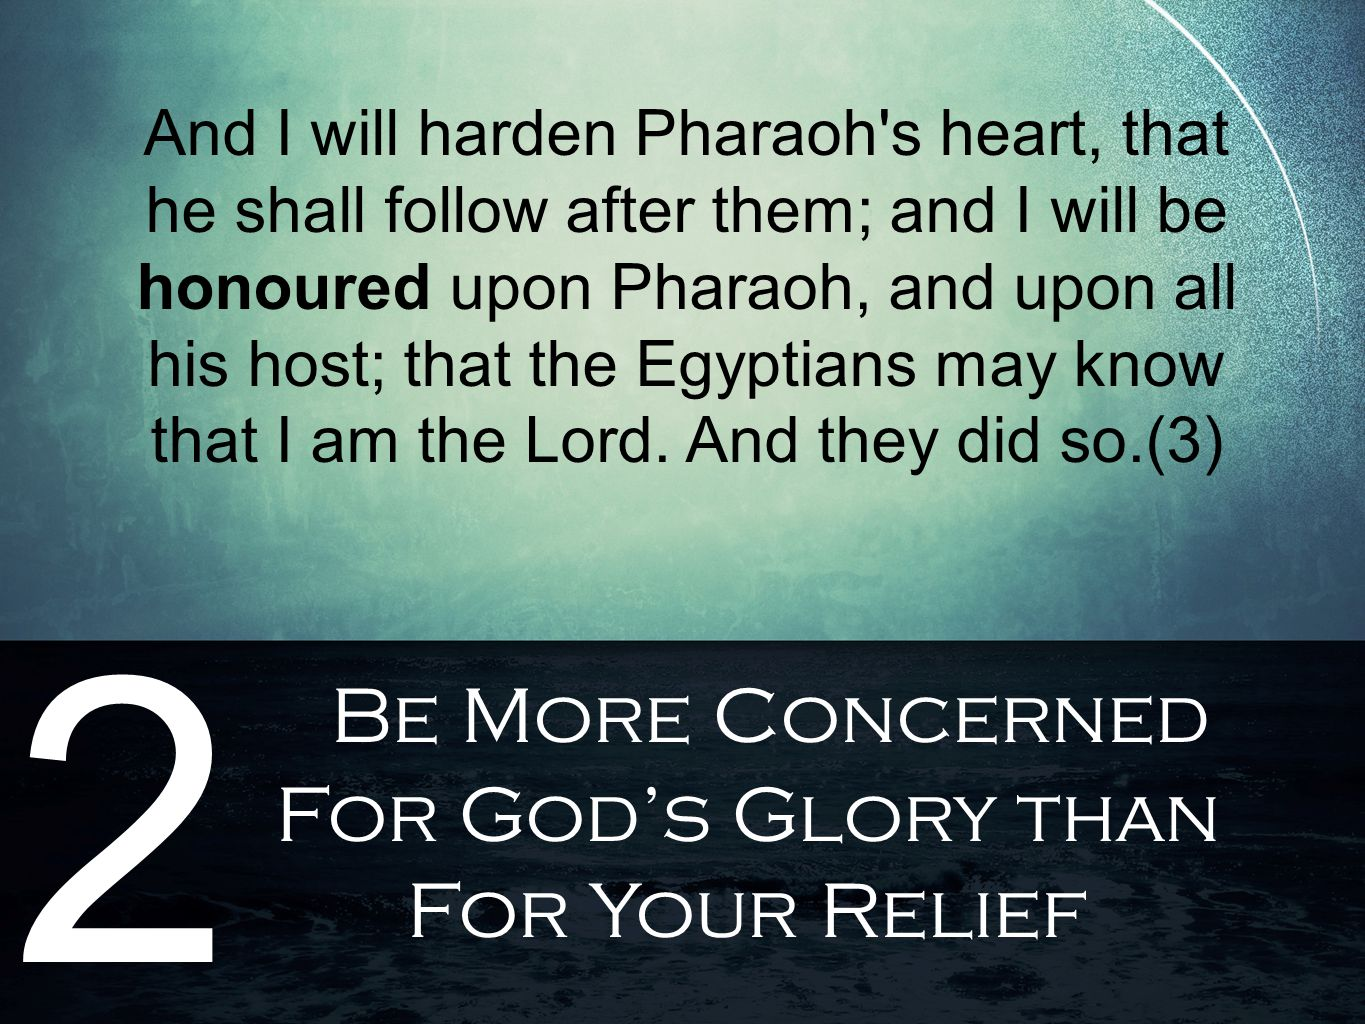 Be More Concerned For God's Glory than For Your Relief 2 And I will harden Pharaoh's heart, that he shall follow after them; and I will be honoured up